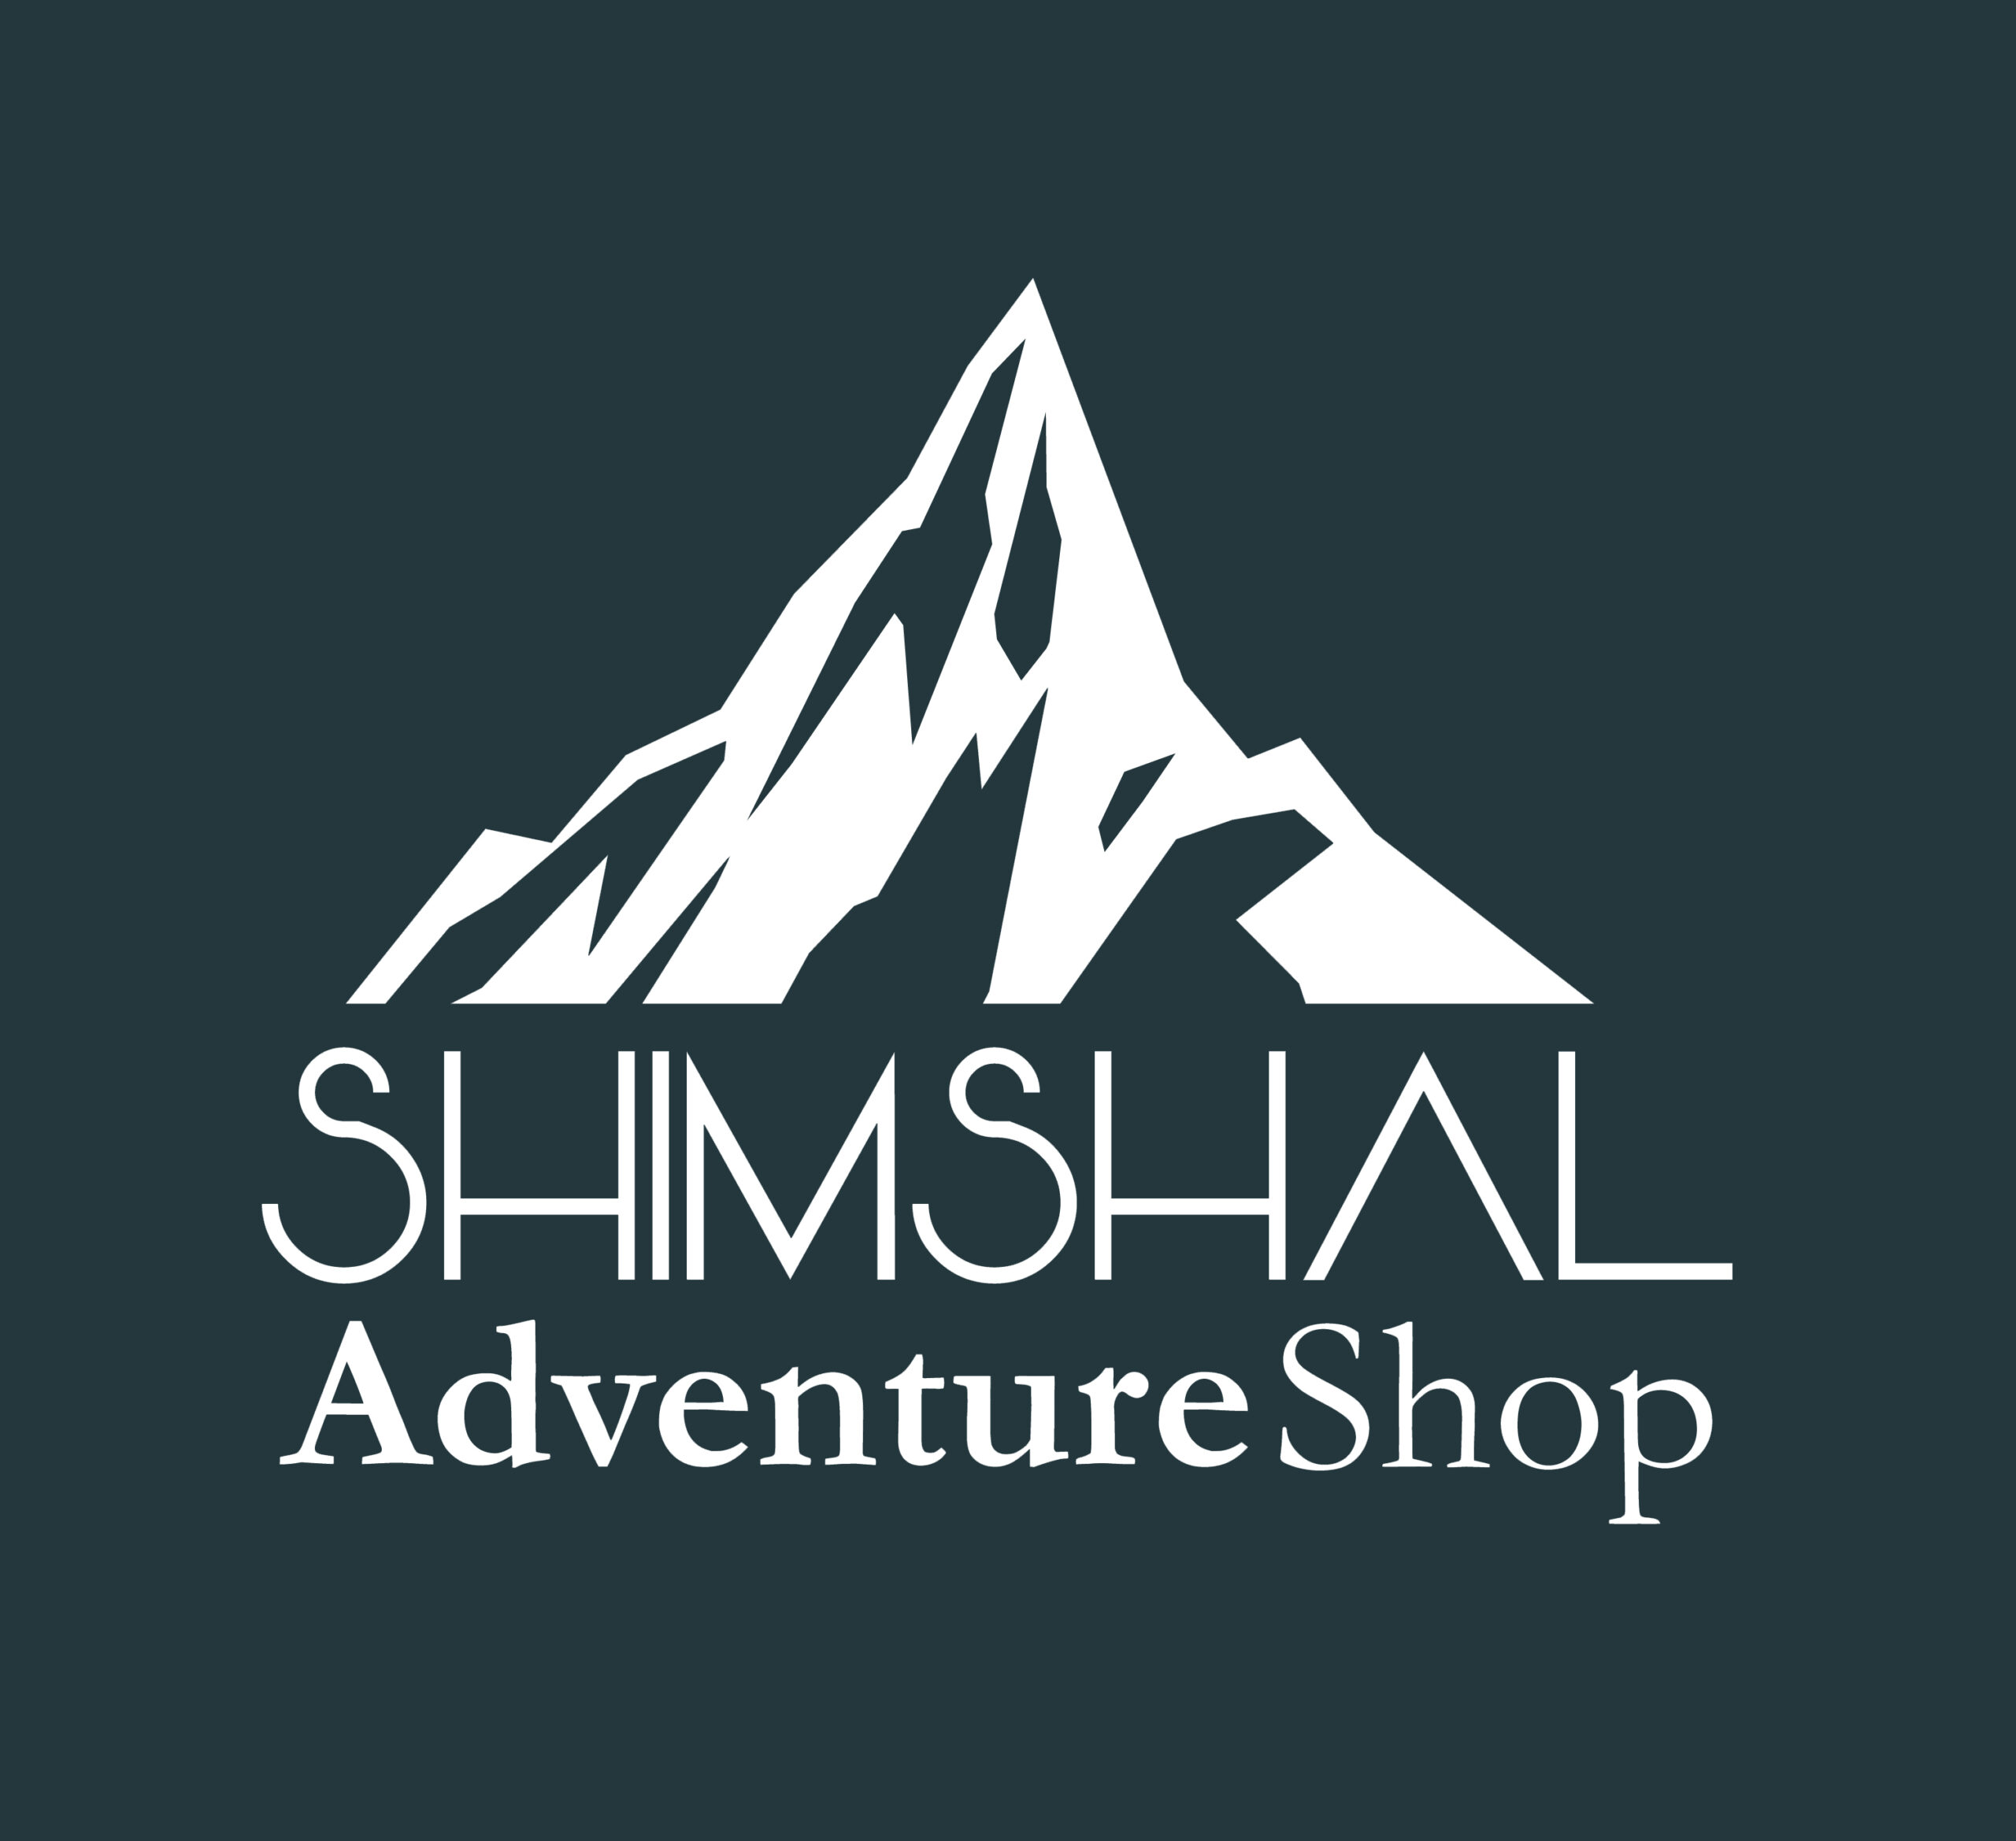 Shimshal Adventure Shop | Outdoor Gear Store in Pakistan